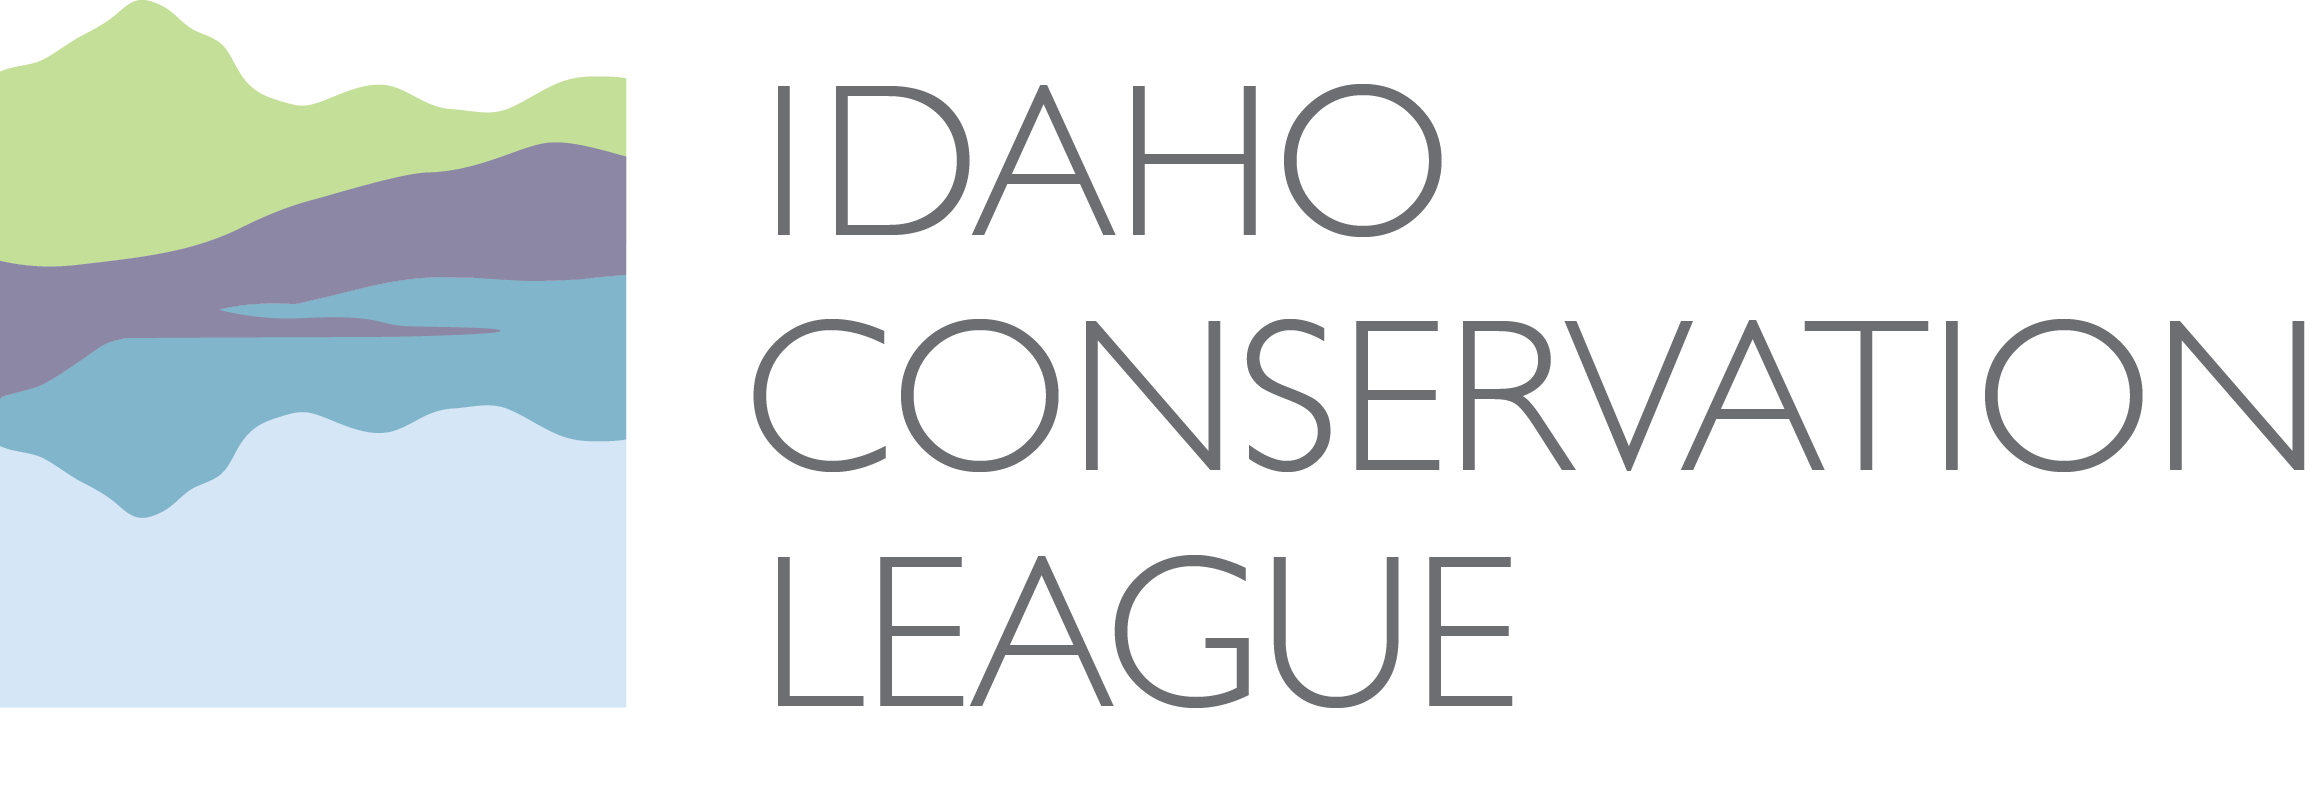 Idaho Conservation